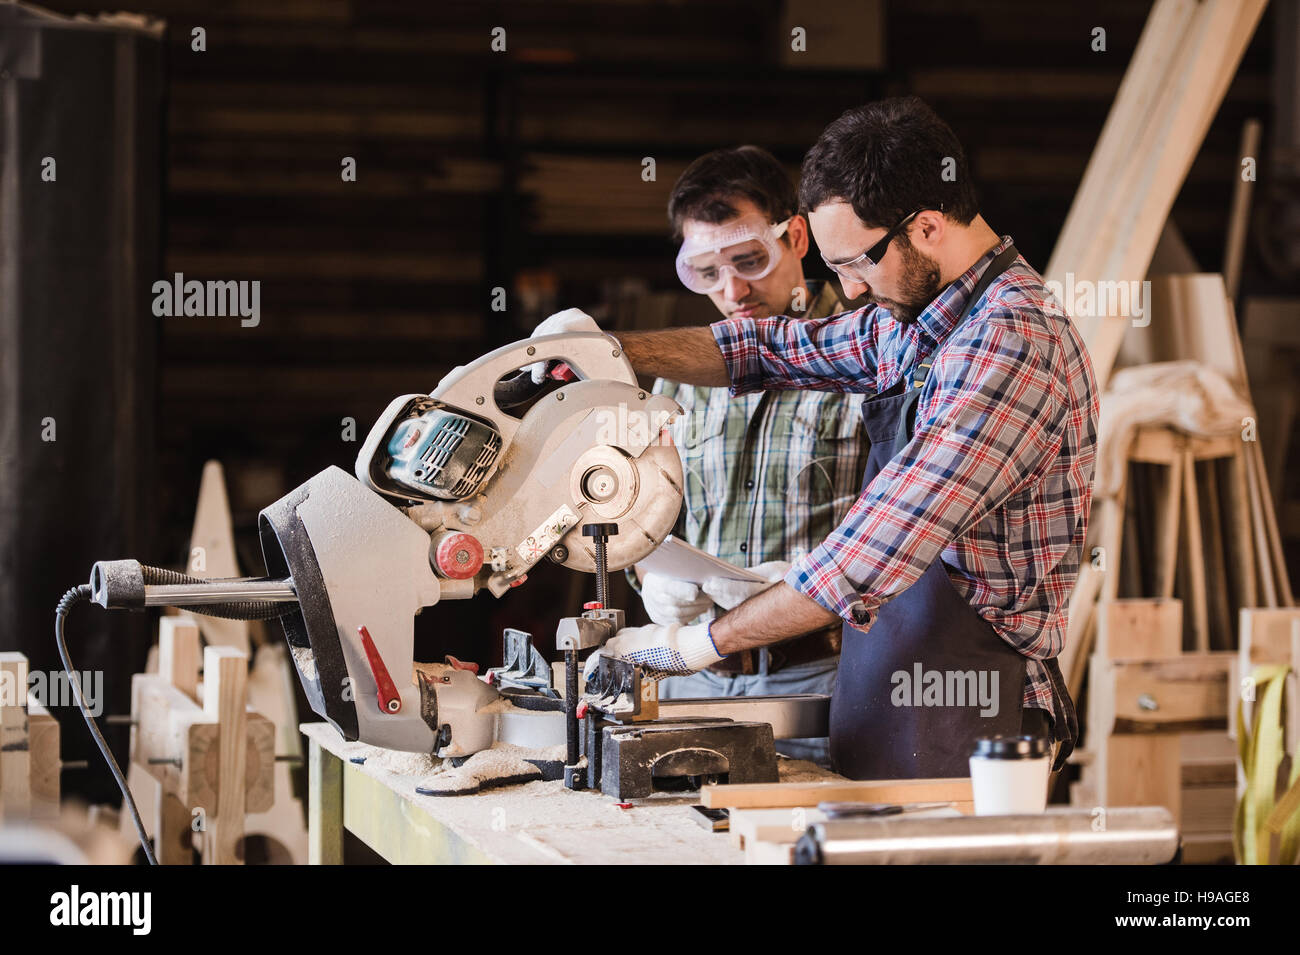 Inspector and carpenter discuss the process of making wood products for furniture - Stock Image